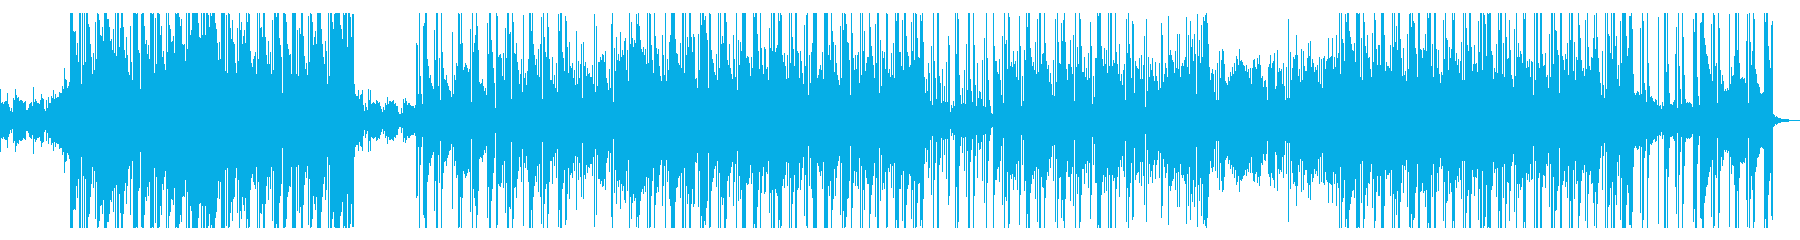 Cool Western music EDM pop music's reproduced waveform